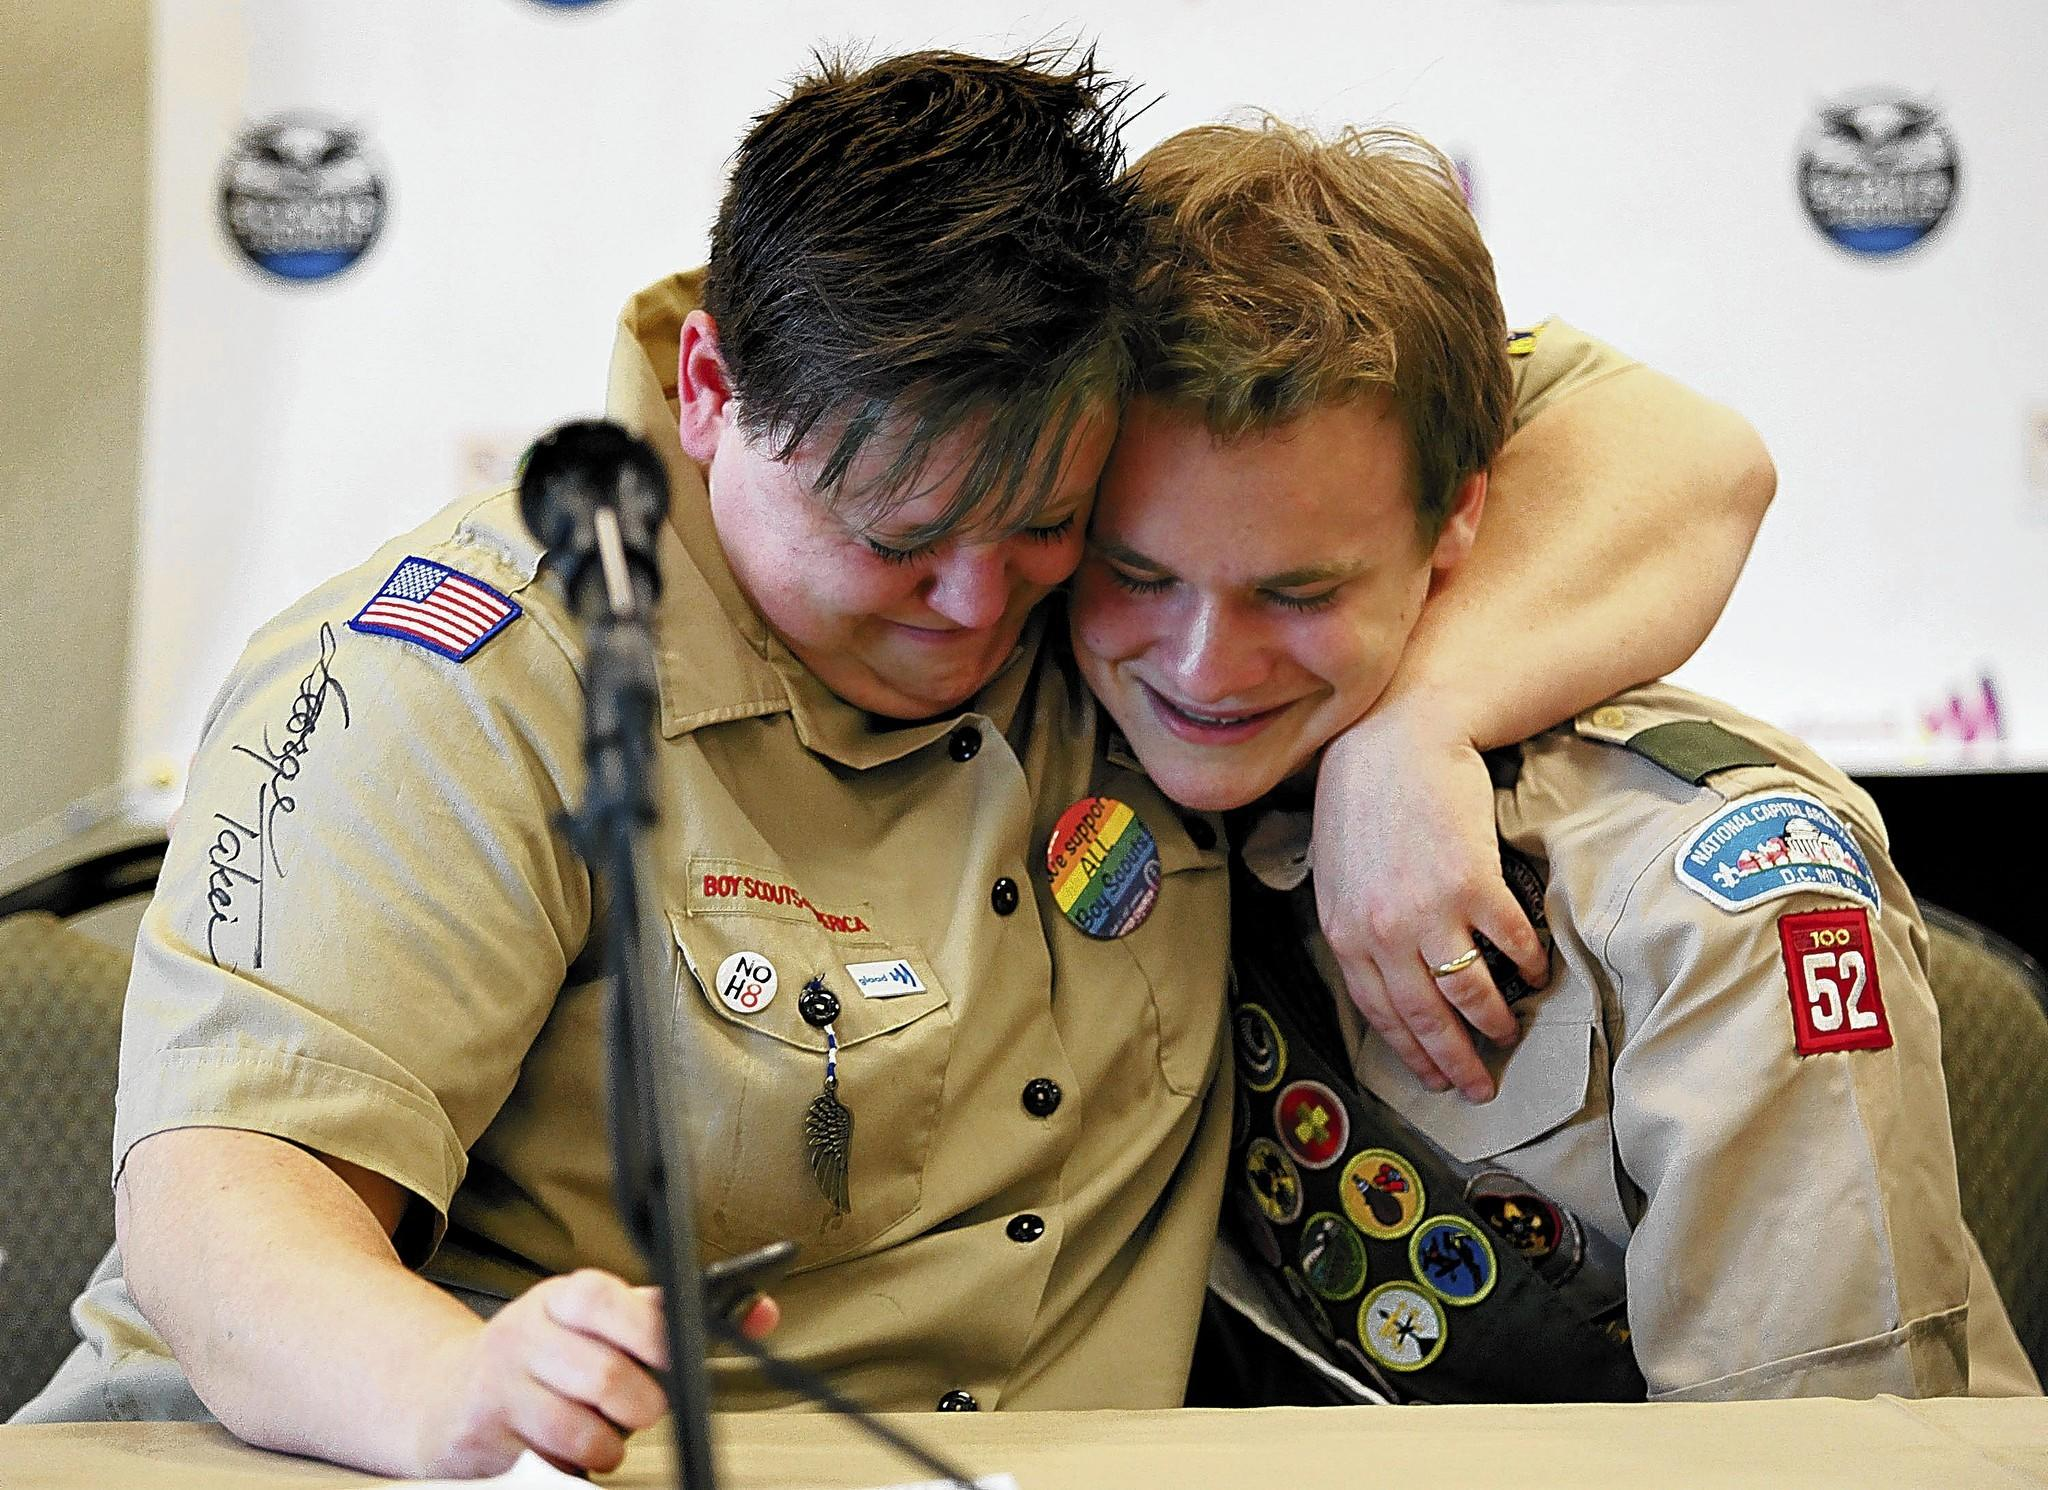 Jennifer Tyrrell hugs Pascal Tessier in May at a news conference in Grapevine, Texas, marking the end of the Boy Scouts' ban on openly gay youths. Tyrrell's ouster as a lesbian Cub Scout den leader will remain in effect.